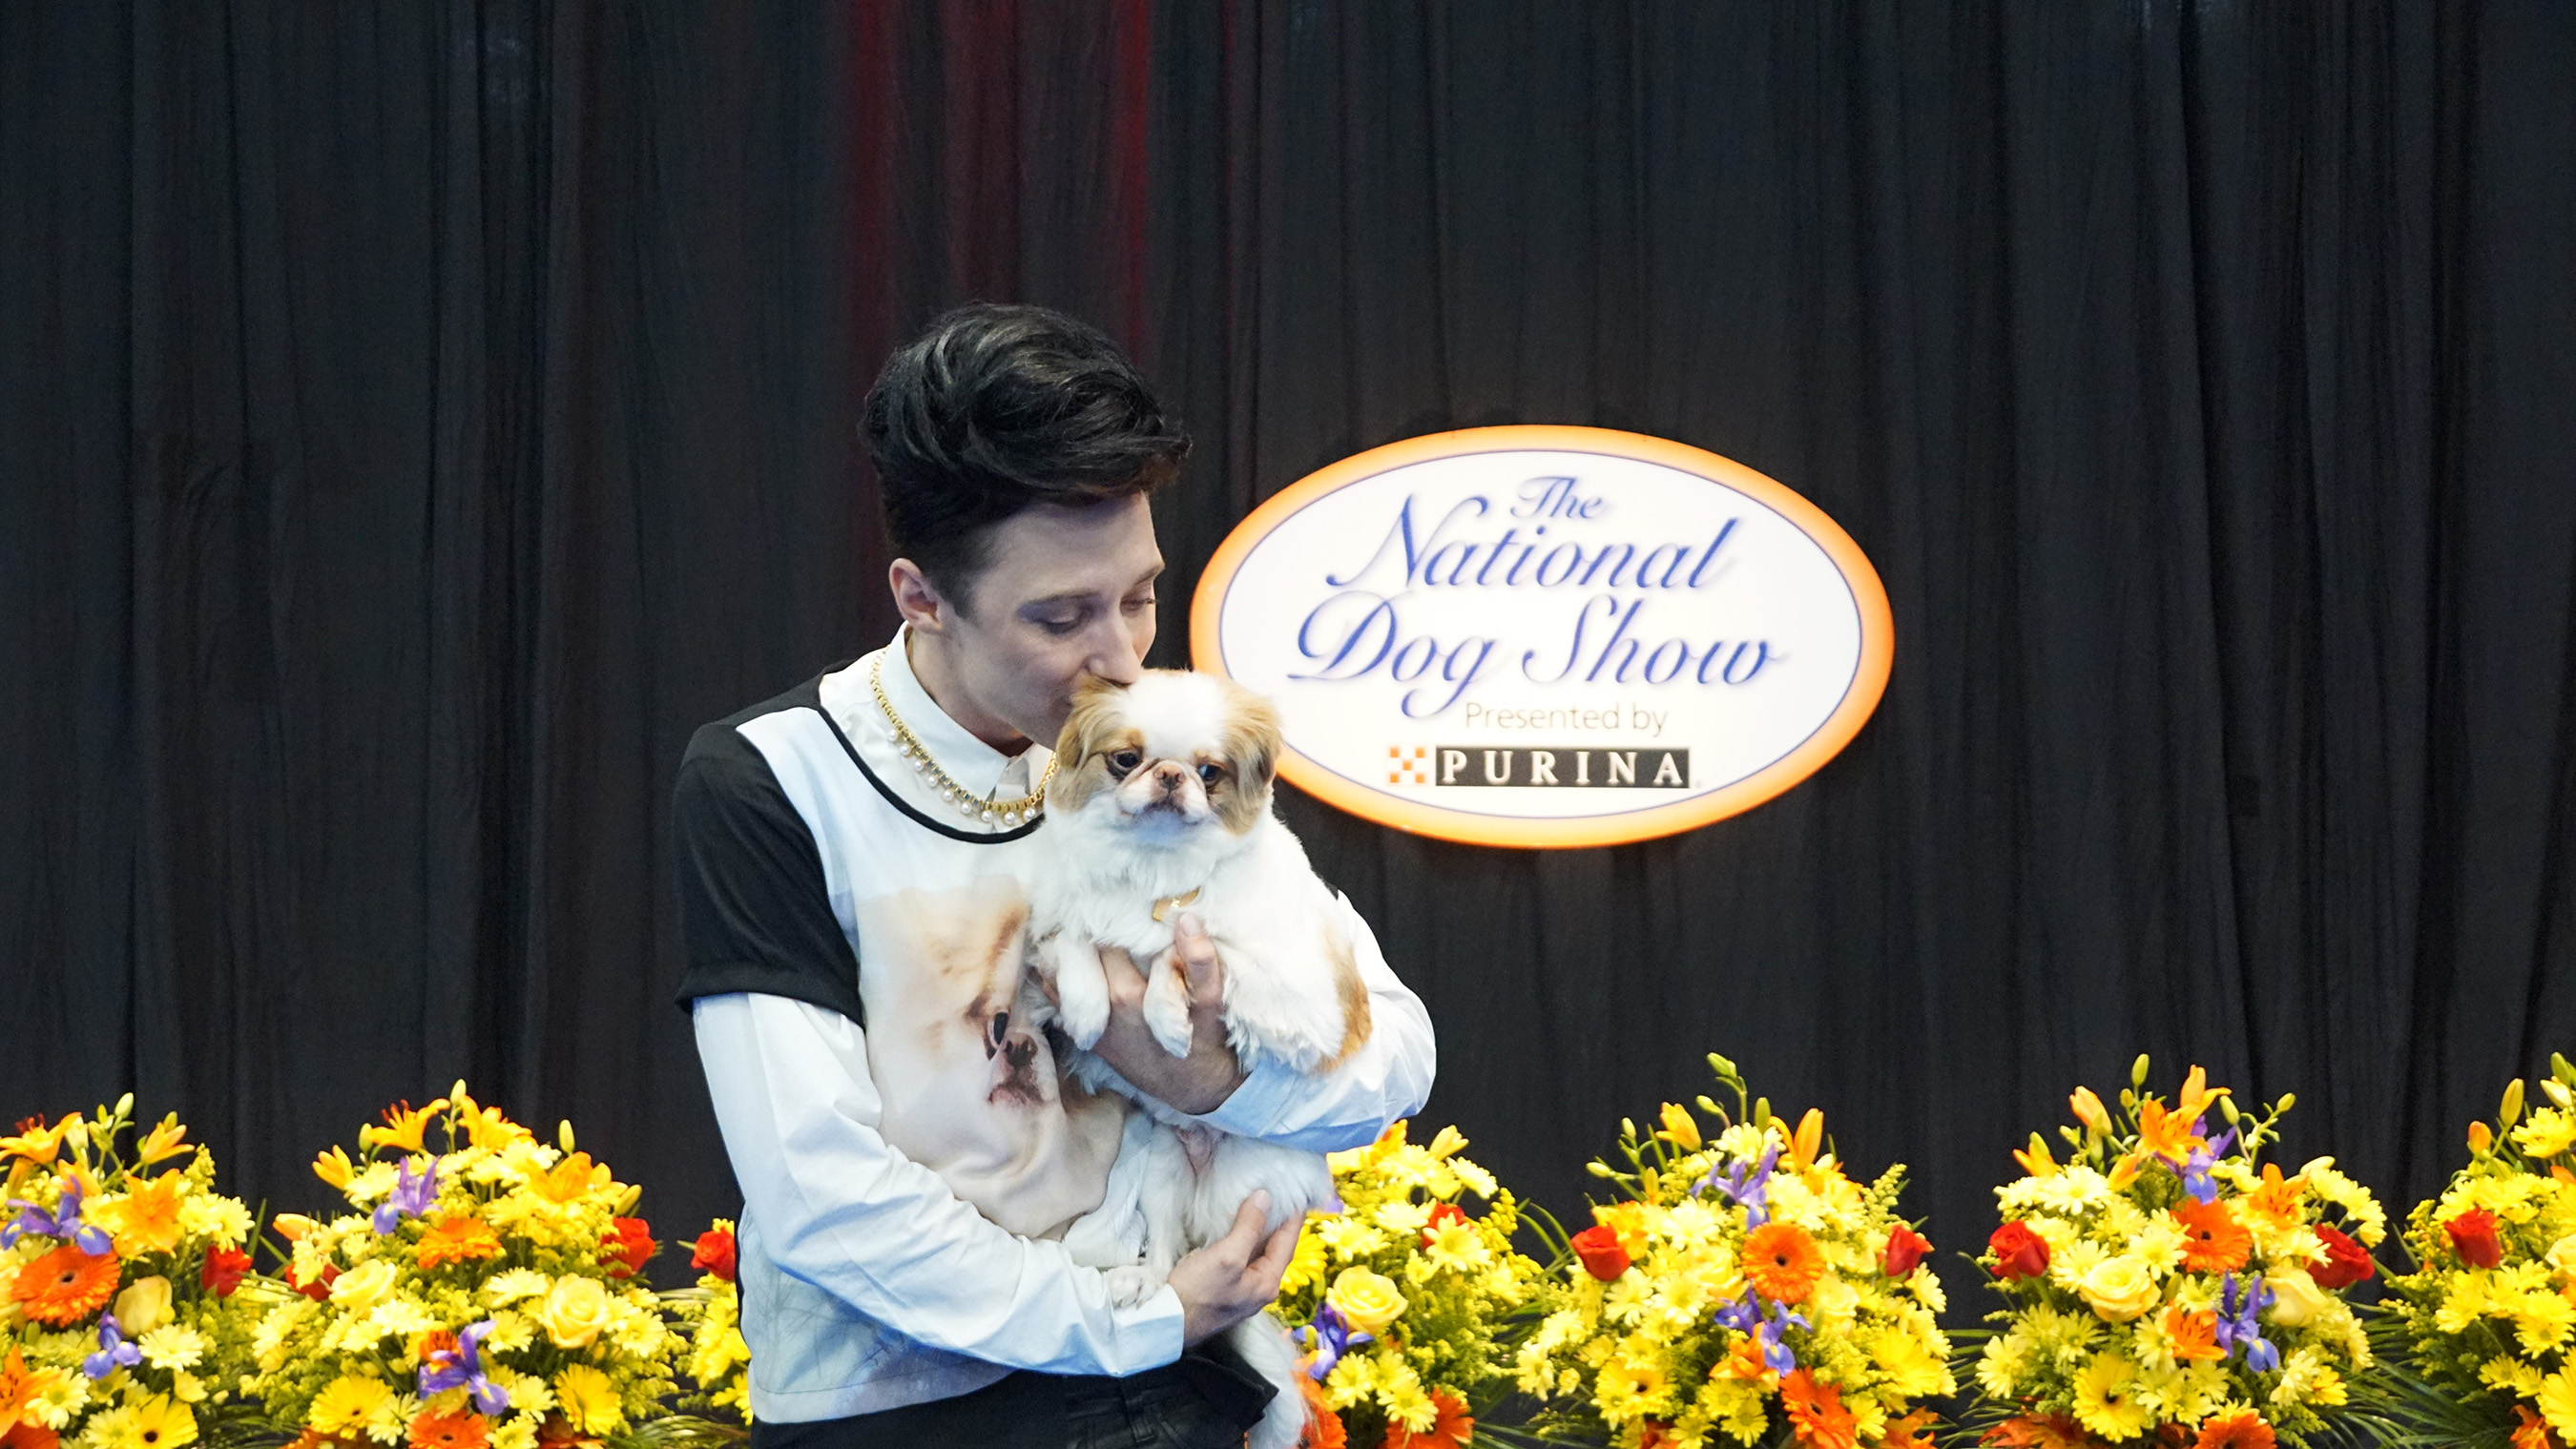 Johnny Weir and his adorable Japanese Chin, Tema, are ready for #DogThanking and the National Dog Show Presented by Purina!